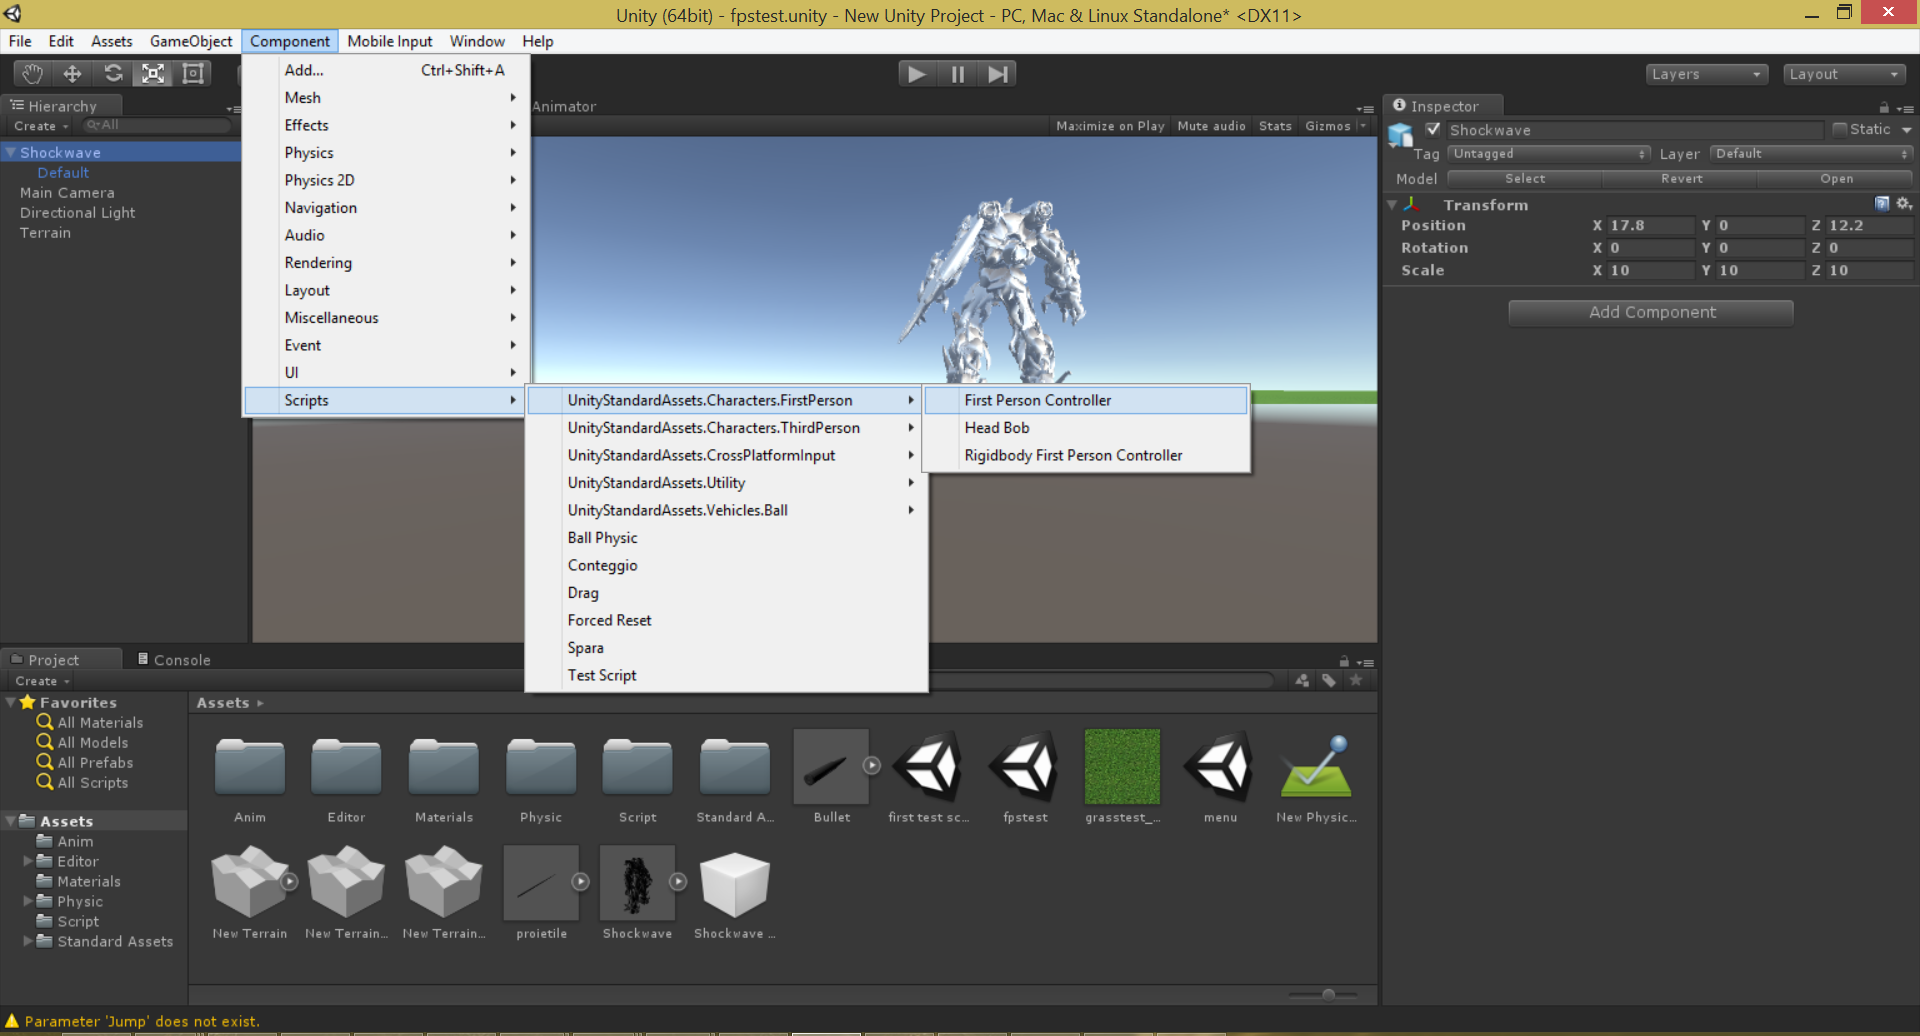 Unity3D 5 First Person Controller Standard Asset doesn't